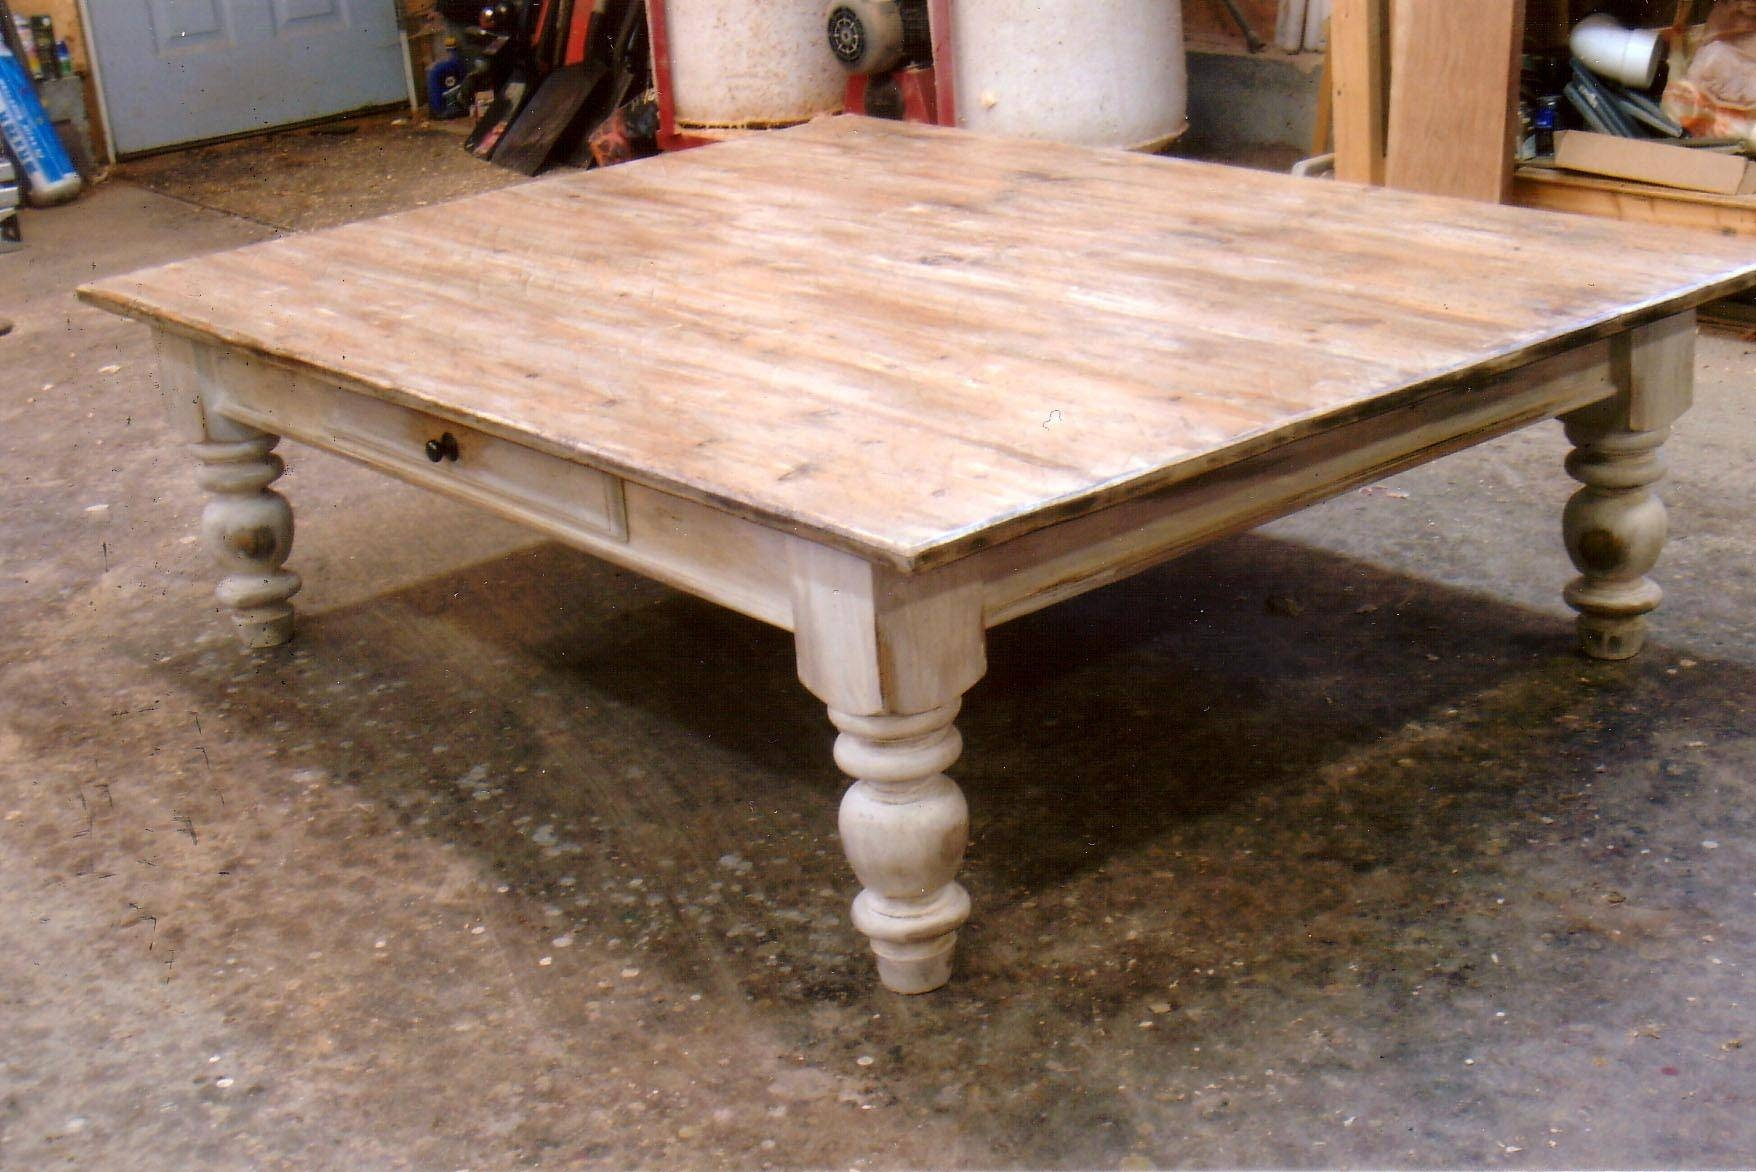 Antique Wood Coffee Table | Coffee Table Design Ideas Regarding Large Rectangular Coffee Tables (View 12 of 30)